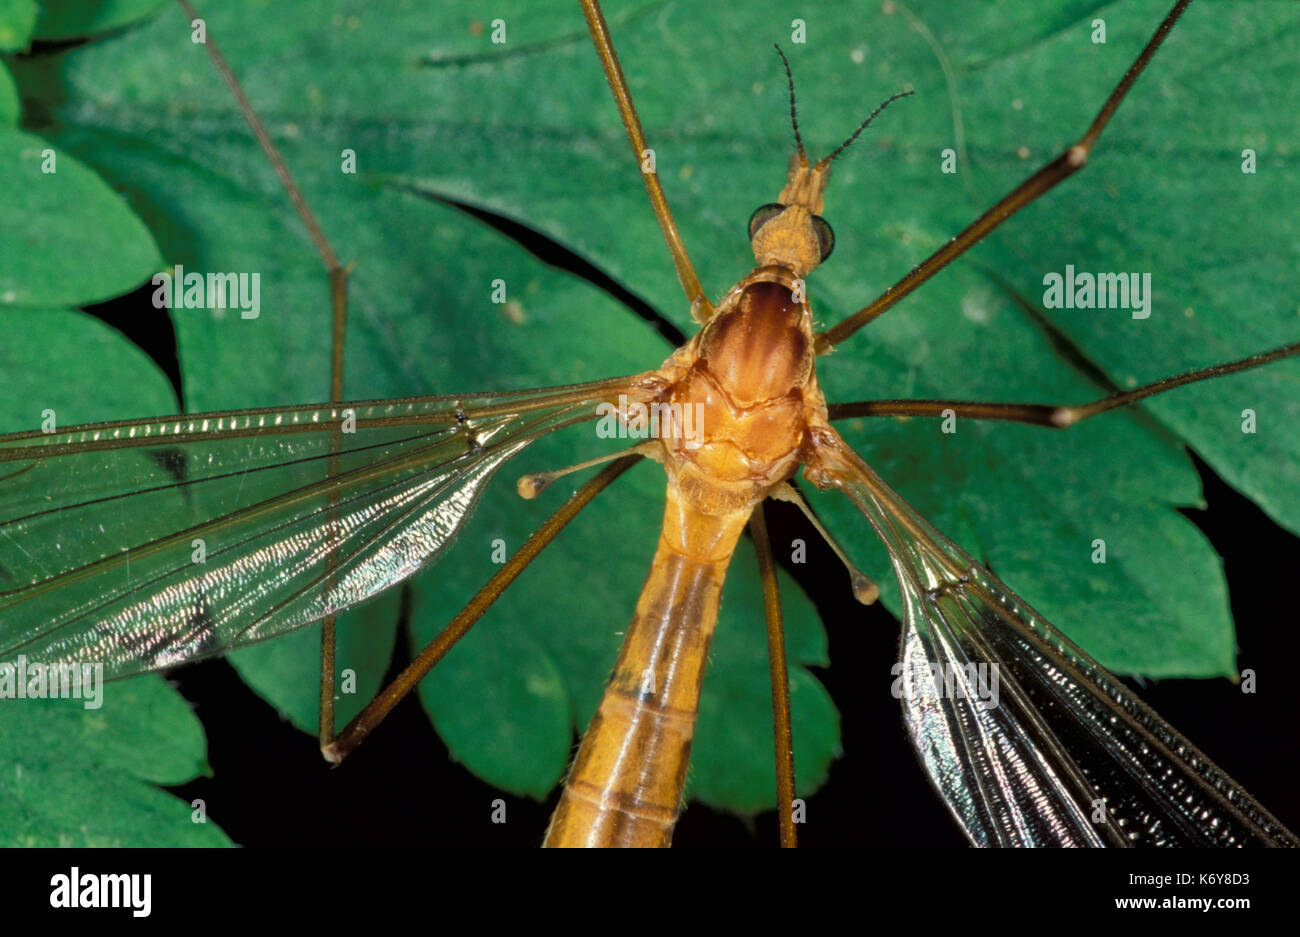 Cranefly, , Daddy Long Legs, Tipula paludosa, UK, close up showing second pair of wings modified drumstick-like appendages known as 'halteres' - Stock Image